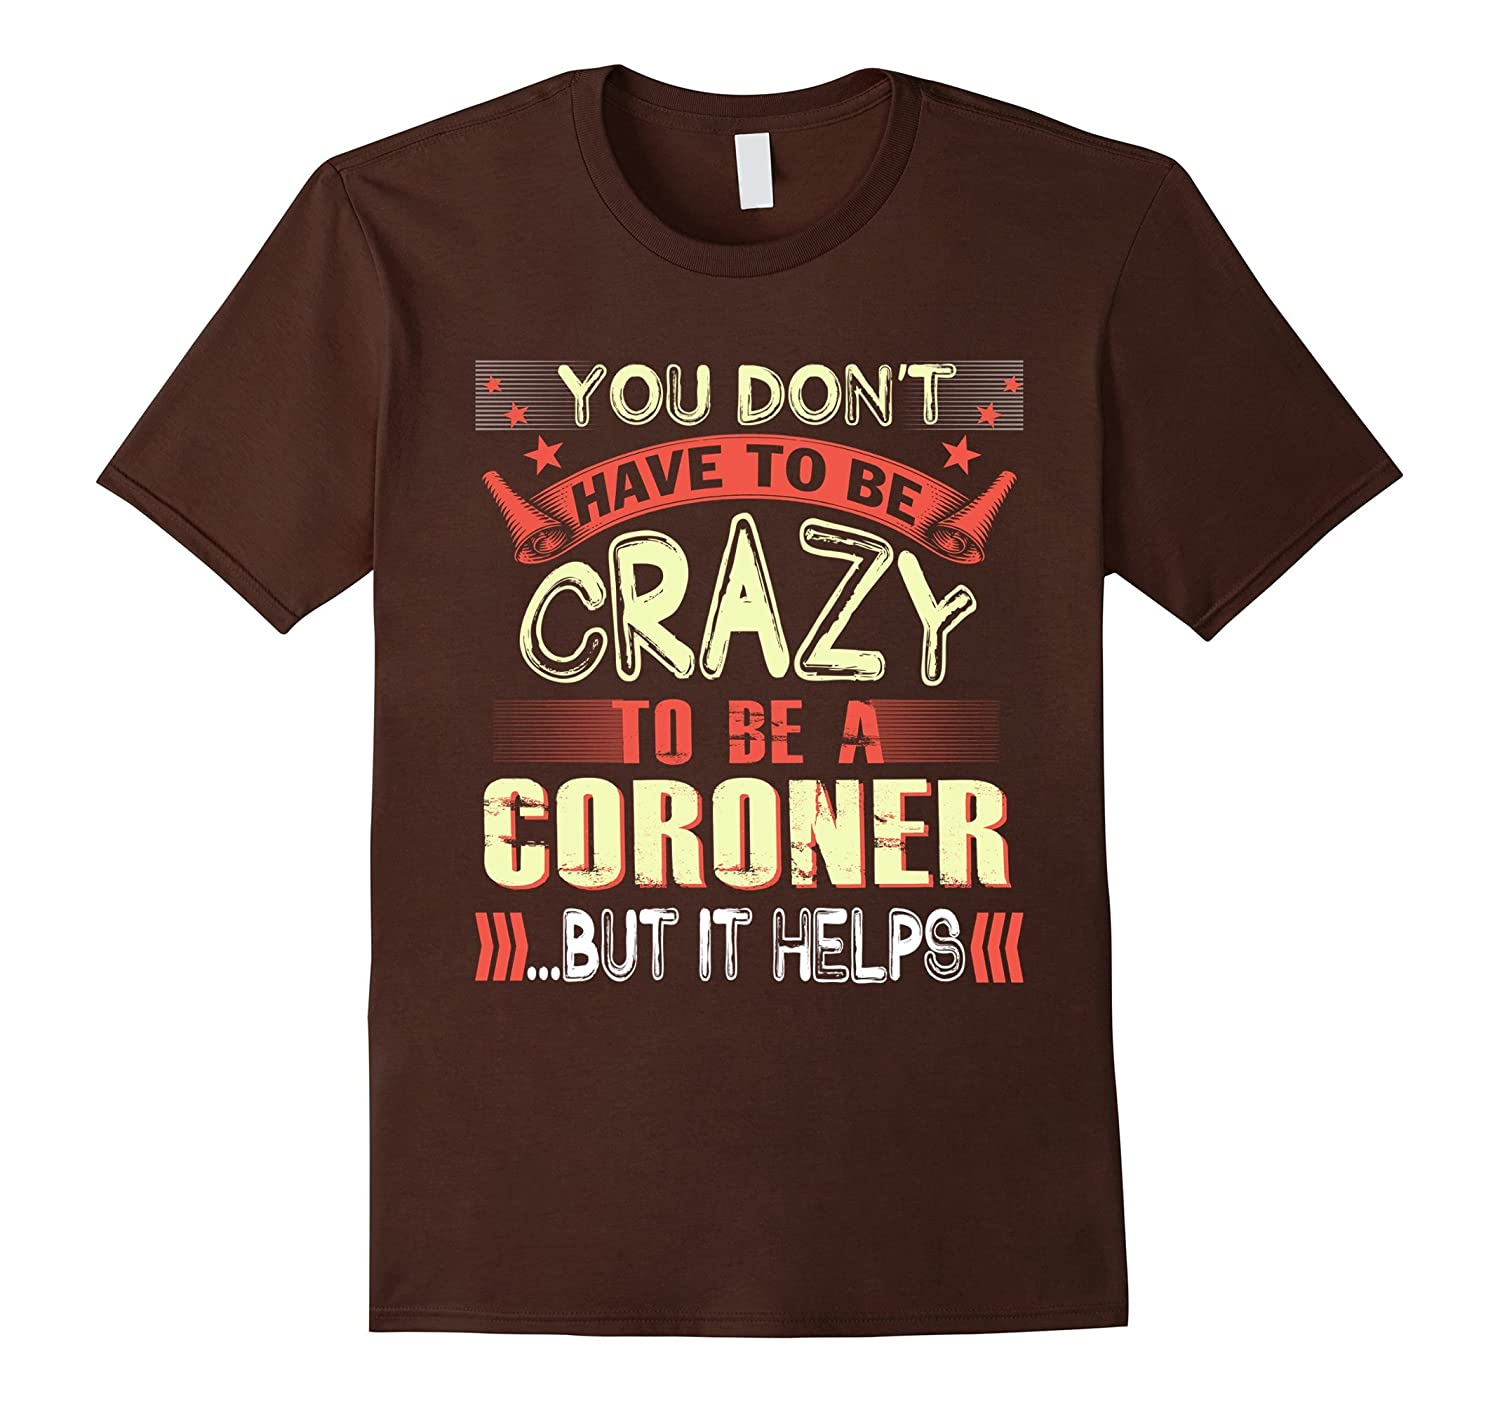 You don't have to be crazy to be a Coroner t-shirt-FL